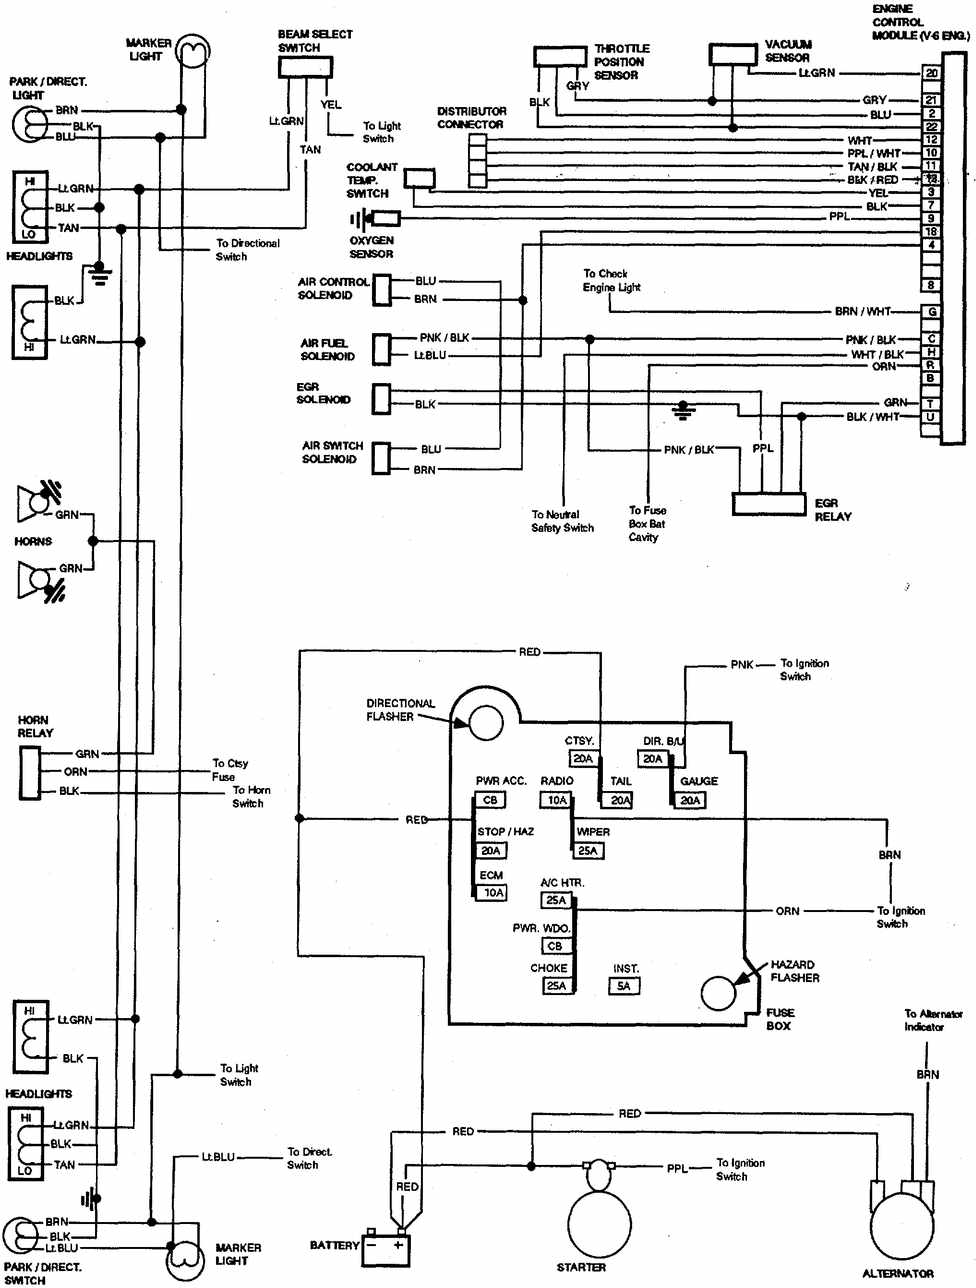 1987 chevy truck wiring harness 1987 chevy truck wiring diagram